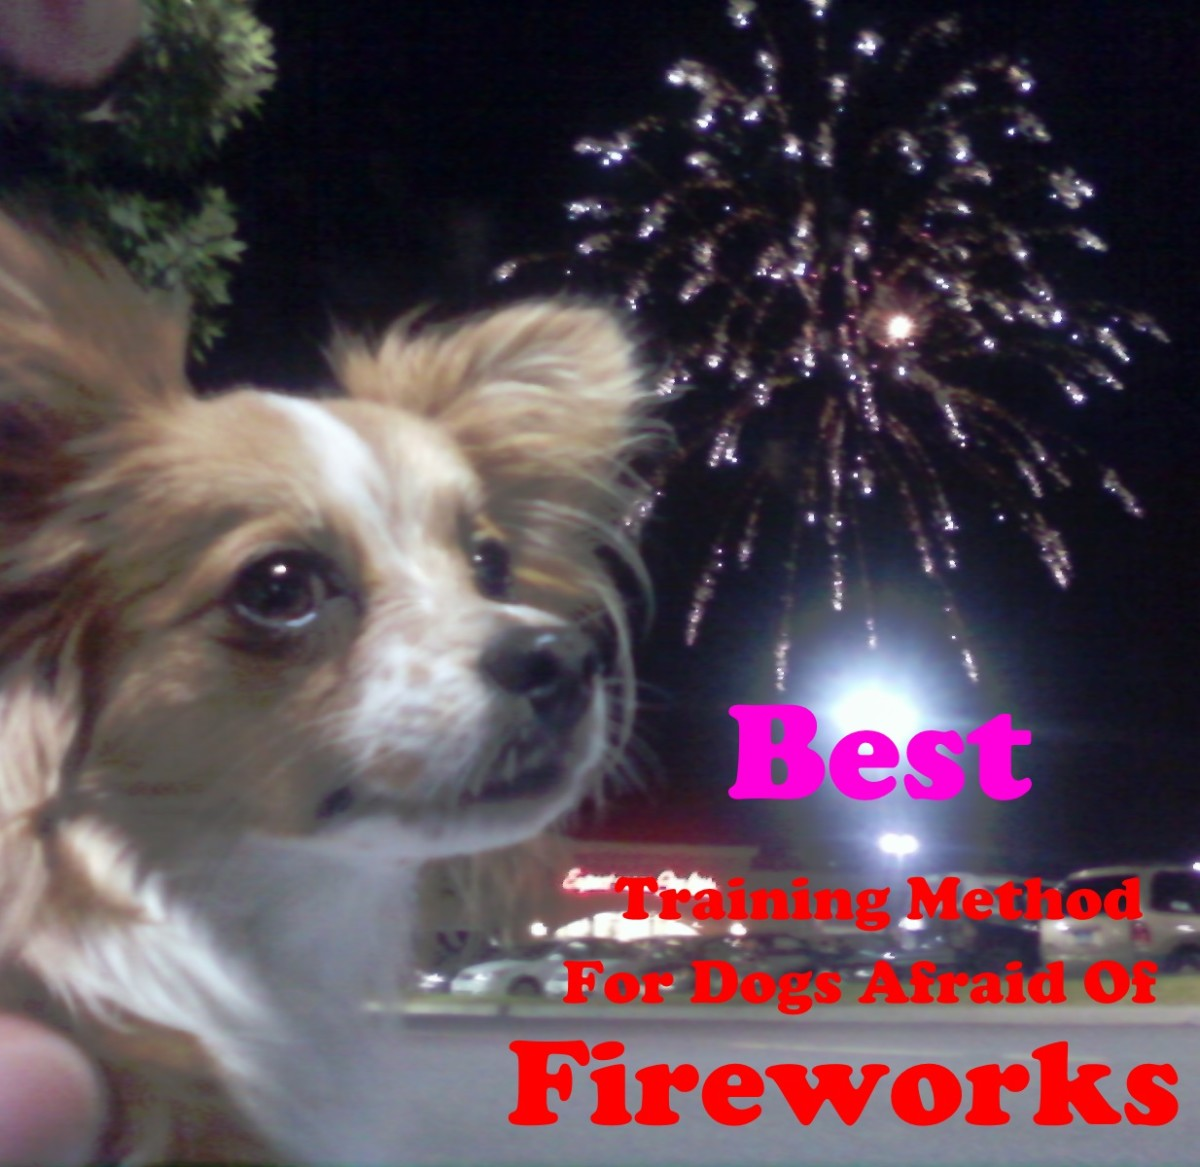 Every dog owner wants their dof calm around fireworks.